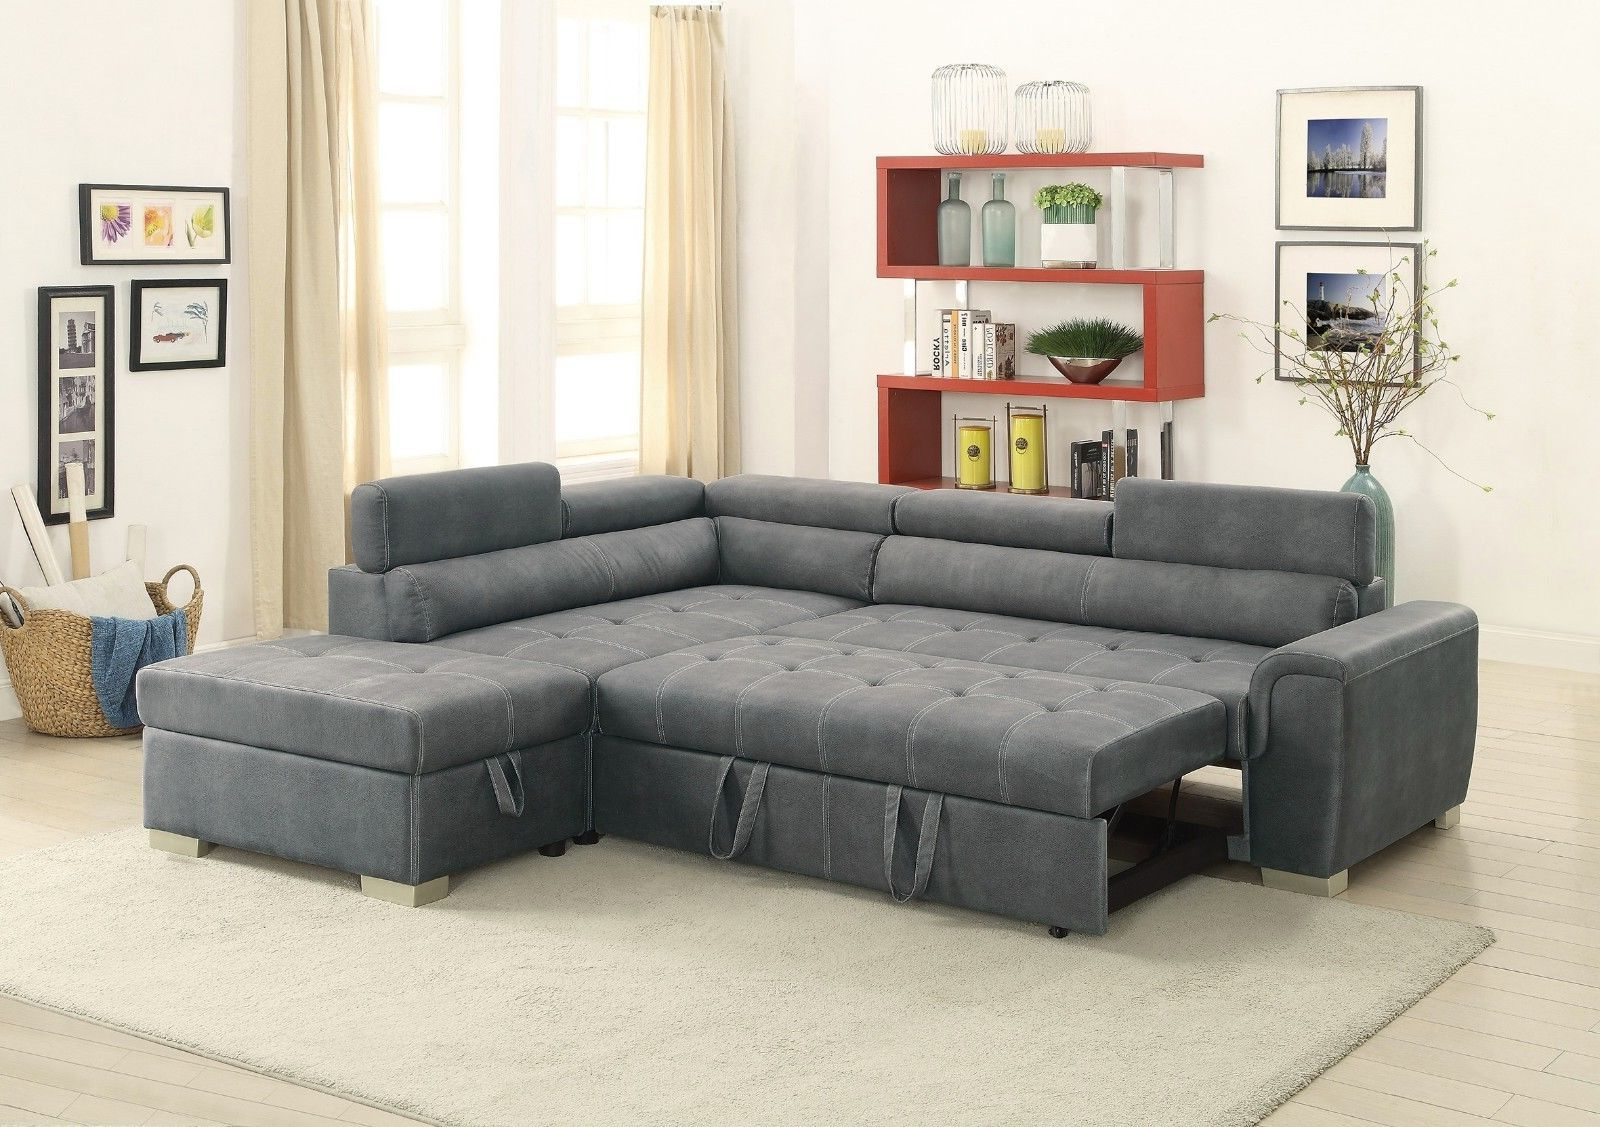 2019 Sectional Grey Breathable Leatherette Chaise Pull Out Sofa Bed Inside Calder Grey 6 Piece Manual Reclining Sectionals (Gallery 9 of 20)